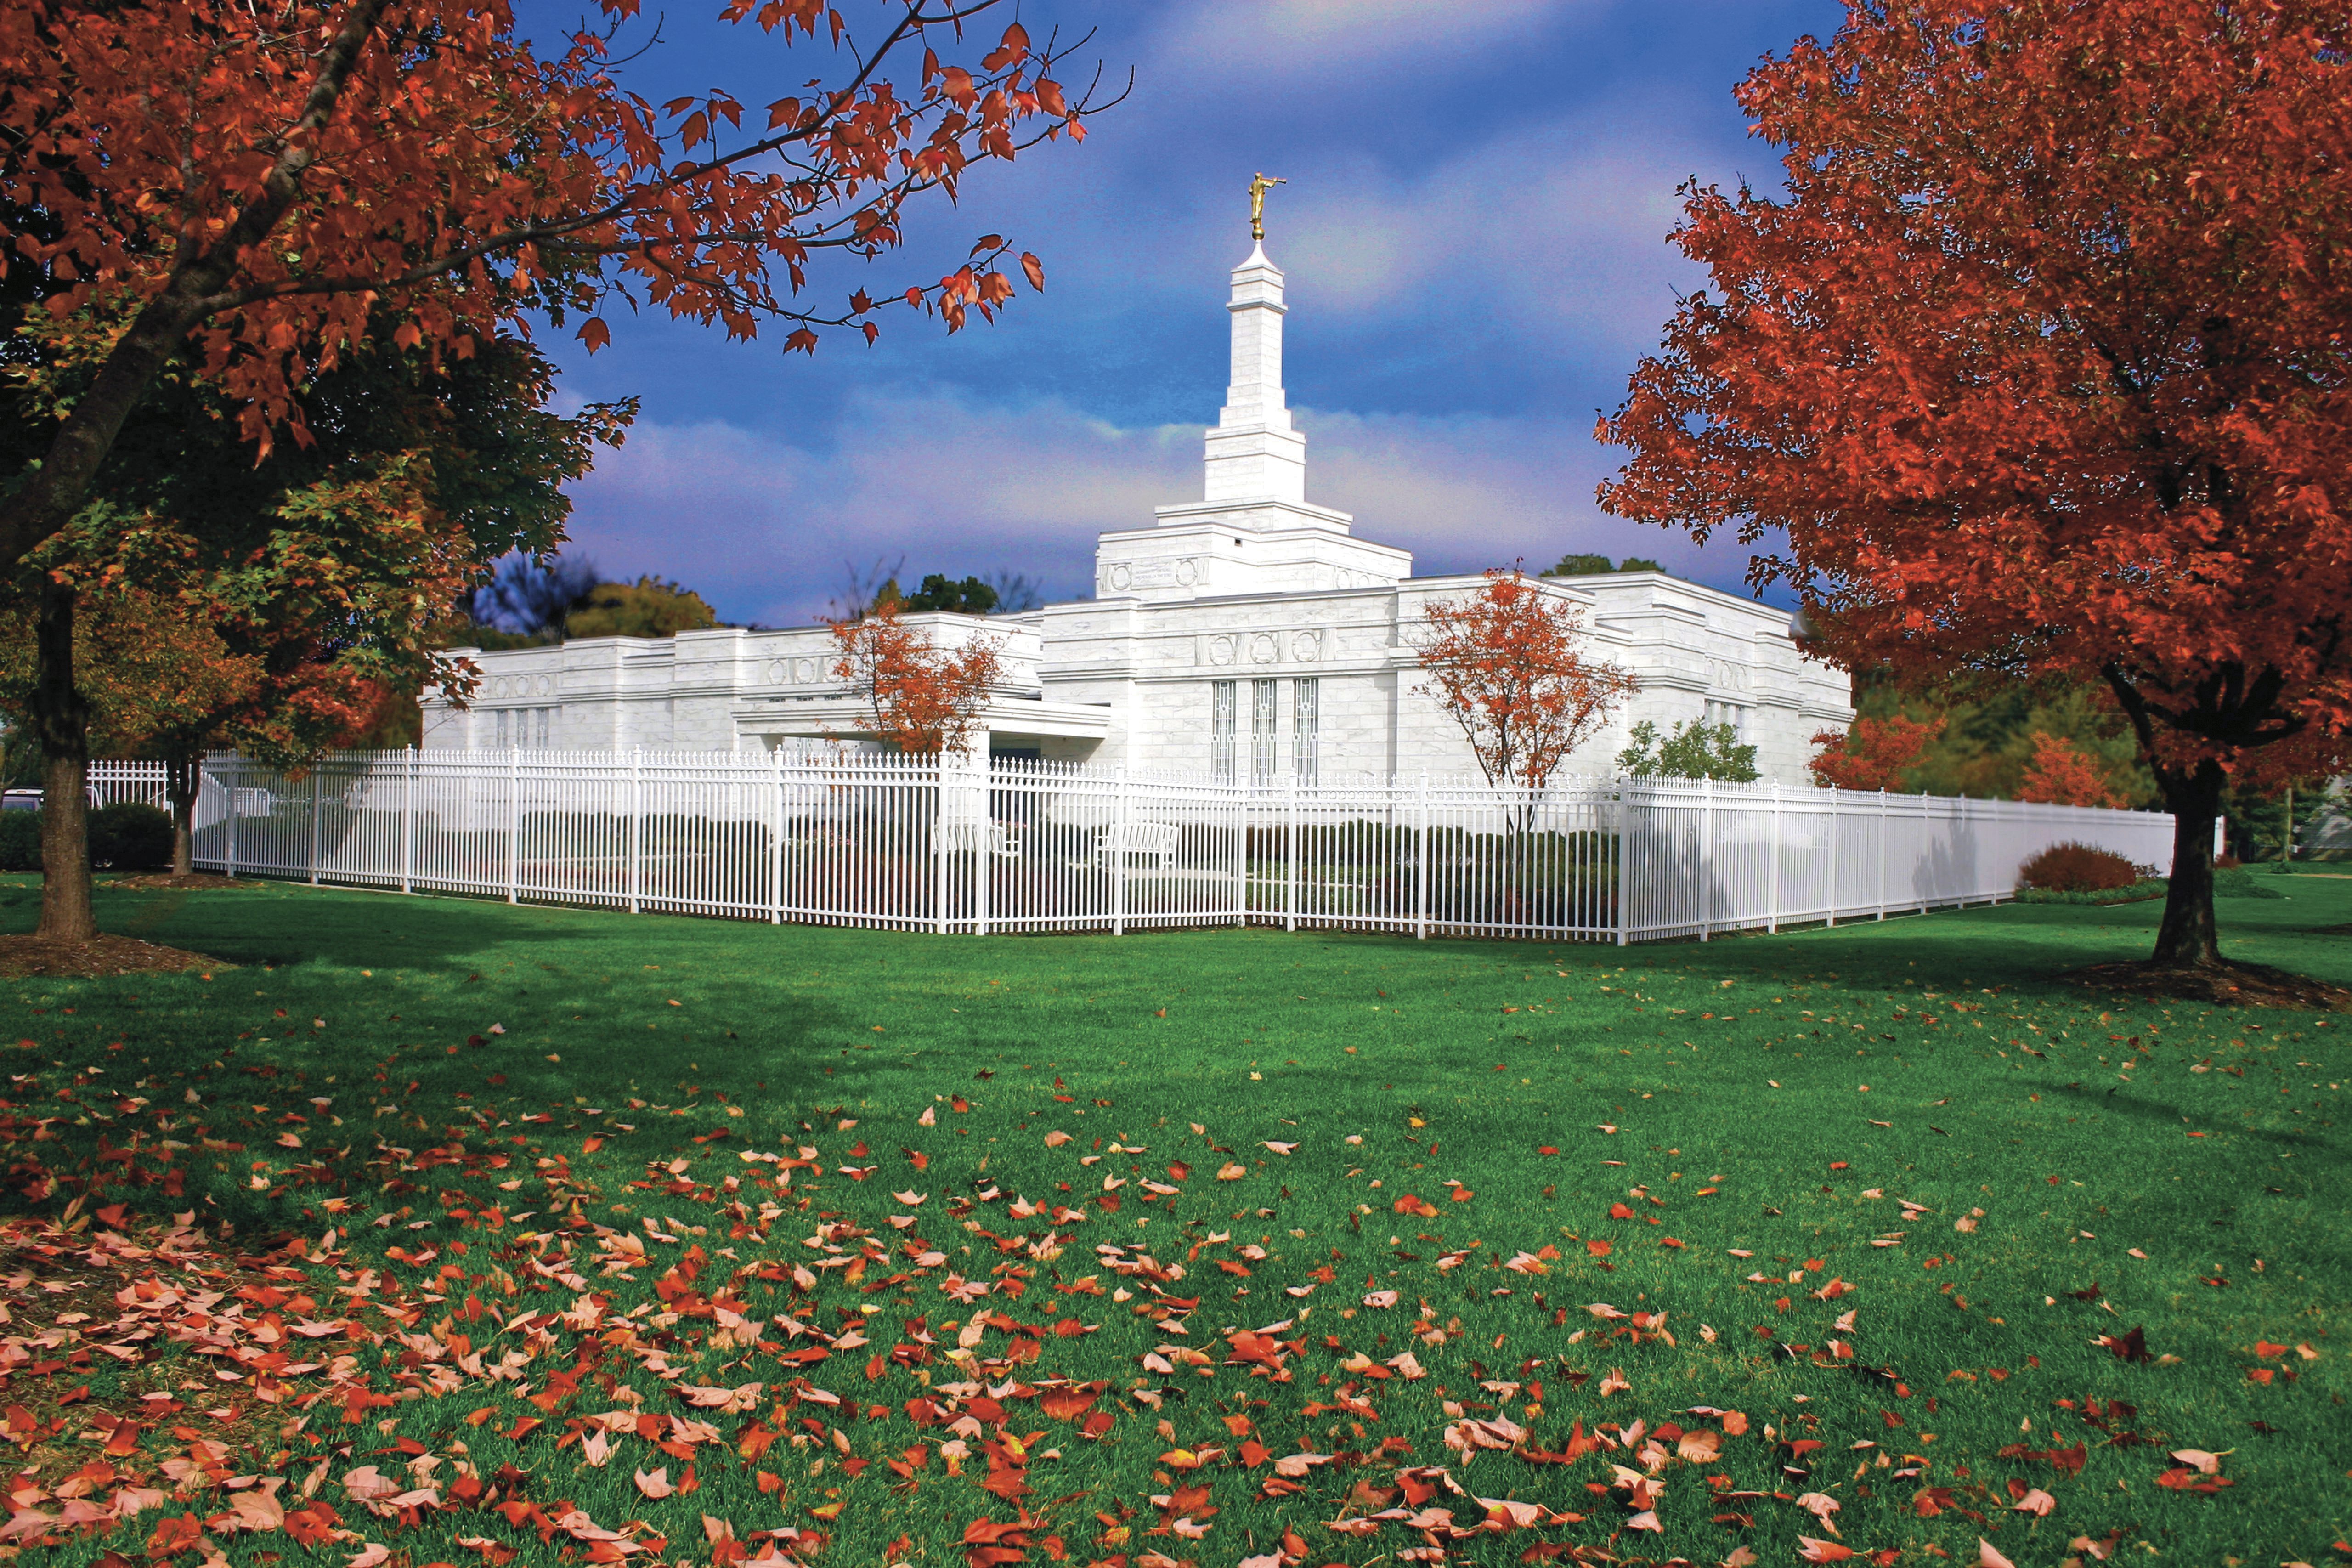 The Columbus Ohio Temple and grounds during the autumn season.